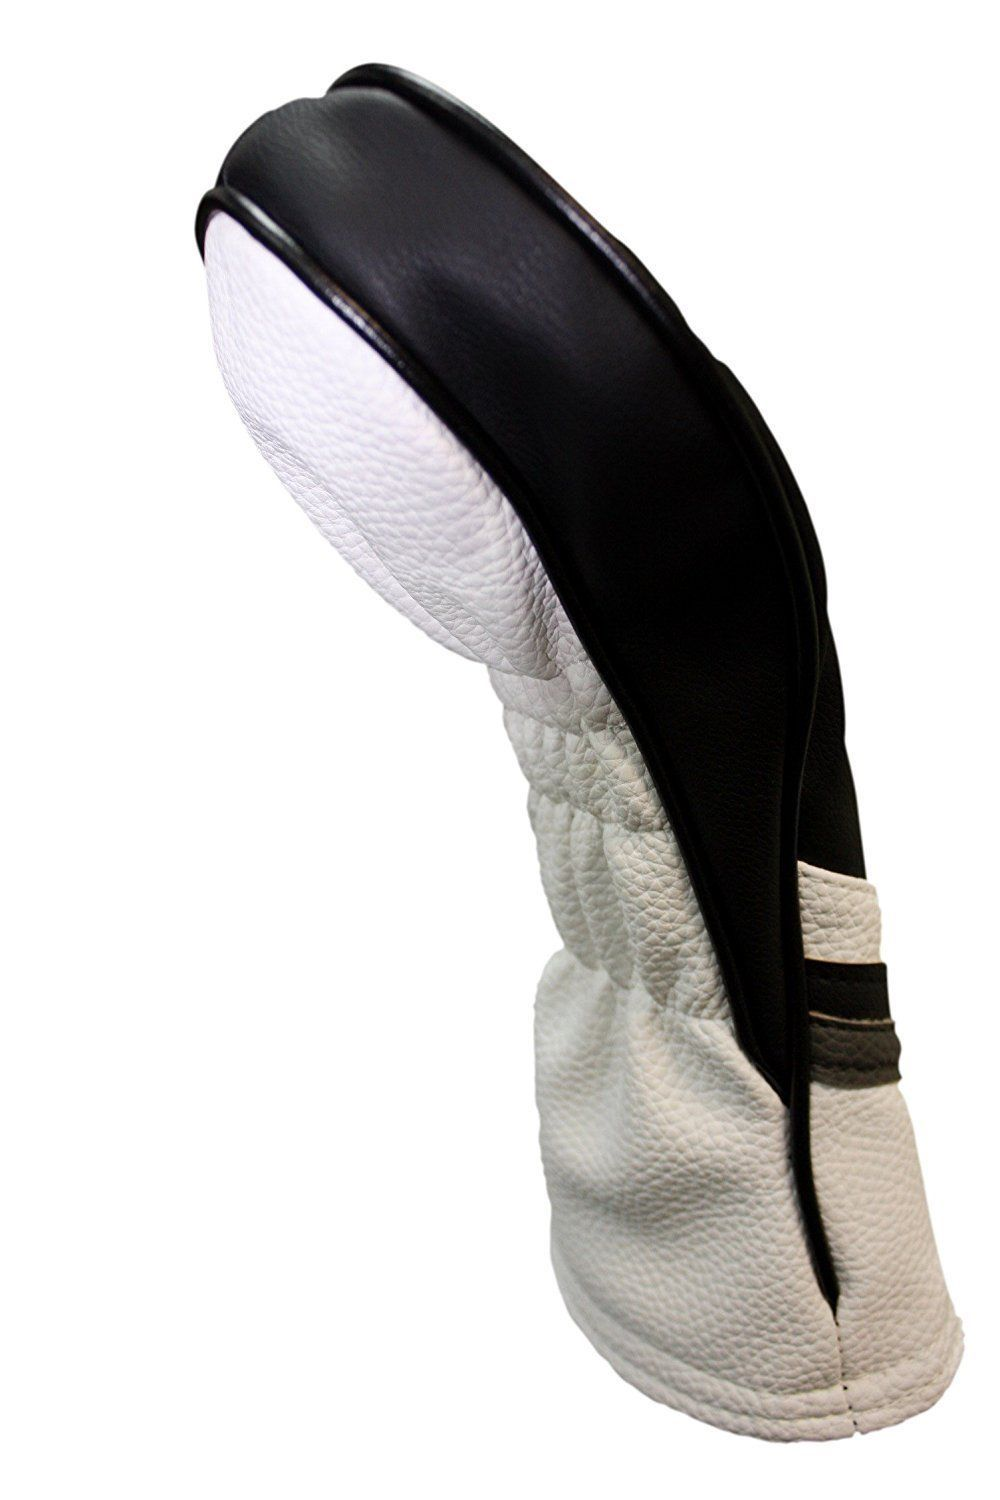 Majek Golf Headcover Black and White Leather Style #5 Hybrid Head Cover